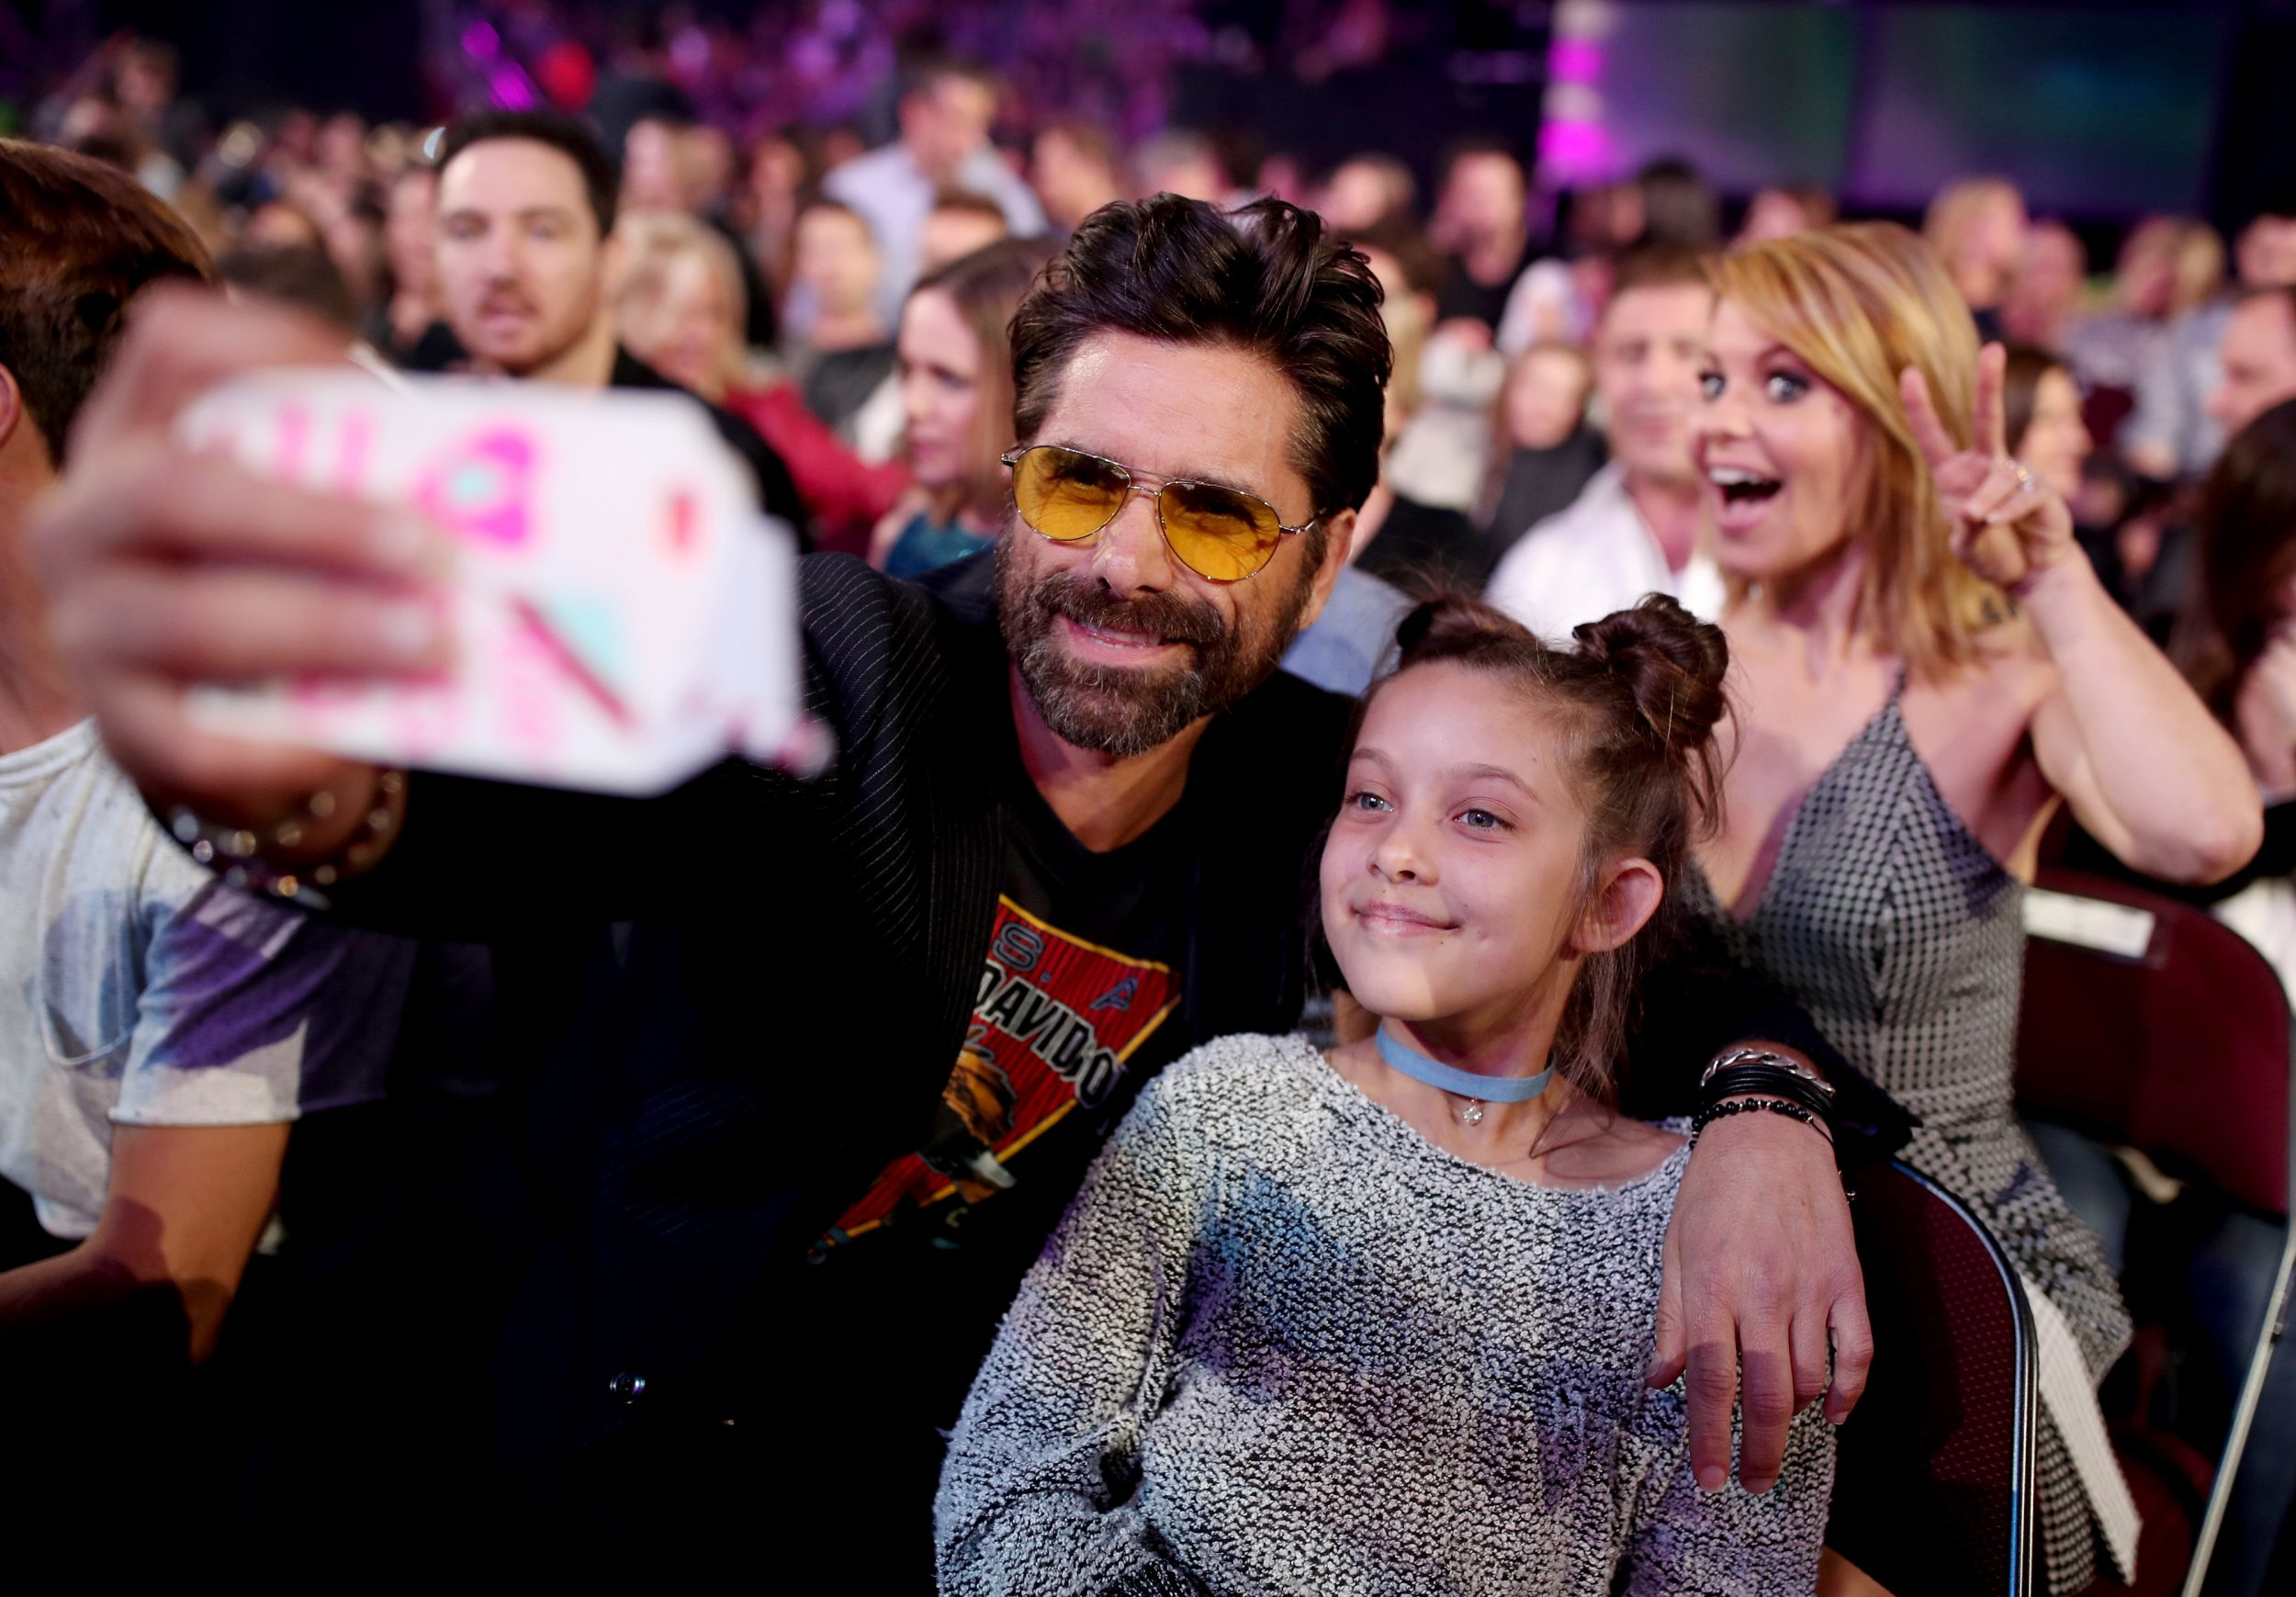 LOS ANGELES, CA - MARCH 11:  Actor John Stamos (L) takes a selfie with a fan while actor Candace Cameron Bure (R) photobombs at Nickelodeon's 2017 Kids' Choice Awards at USC Galen Center on March 11, 2017 in Los Angeles, California.  (Photo by Chris Polk/KCA2017/Getty Images for Nickelodeon)